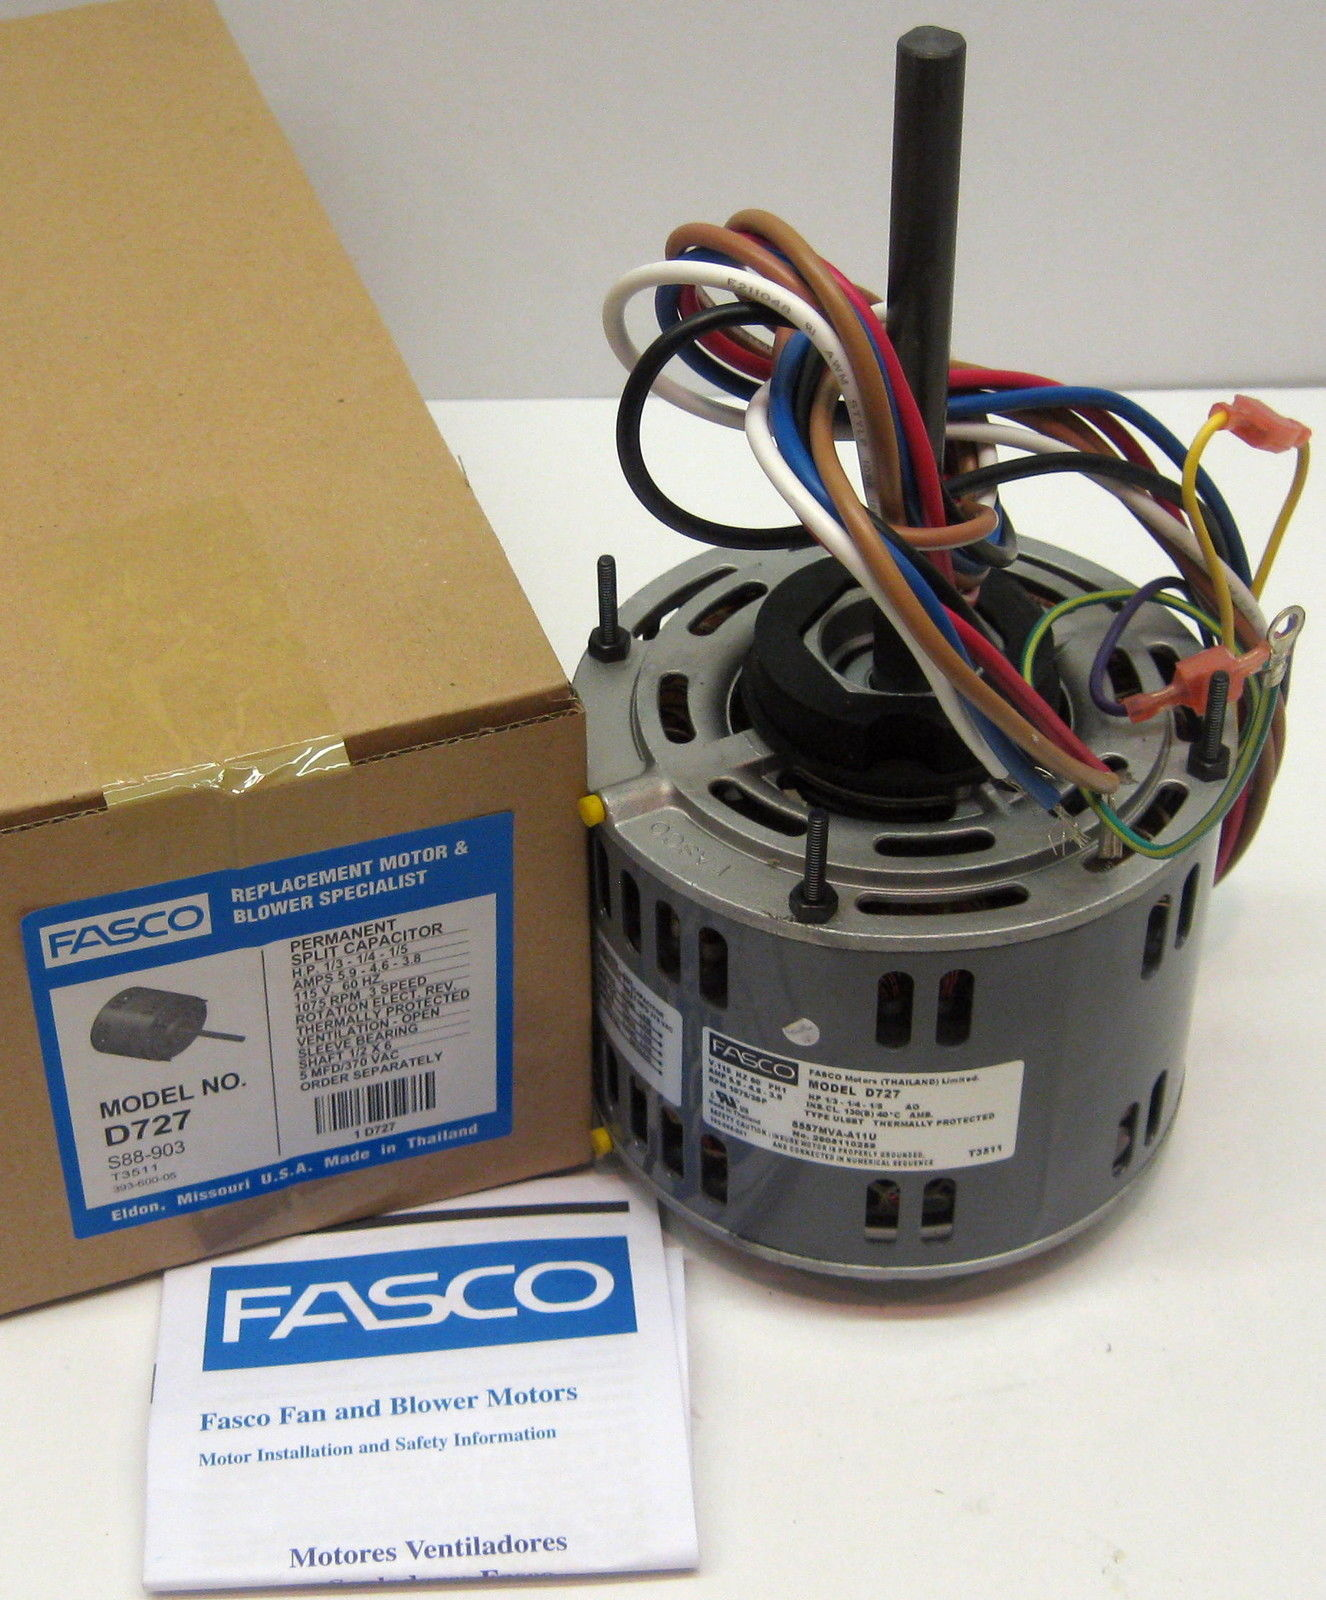 fasco d827 motor wiring diagram trailer for ford f 150 d727 1 3 hp 1075 rpm 115 v speed furnace blower